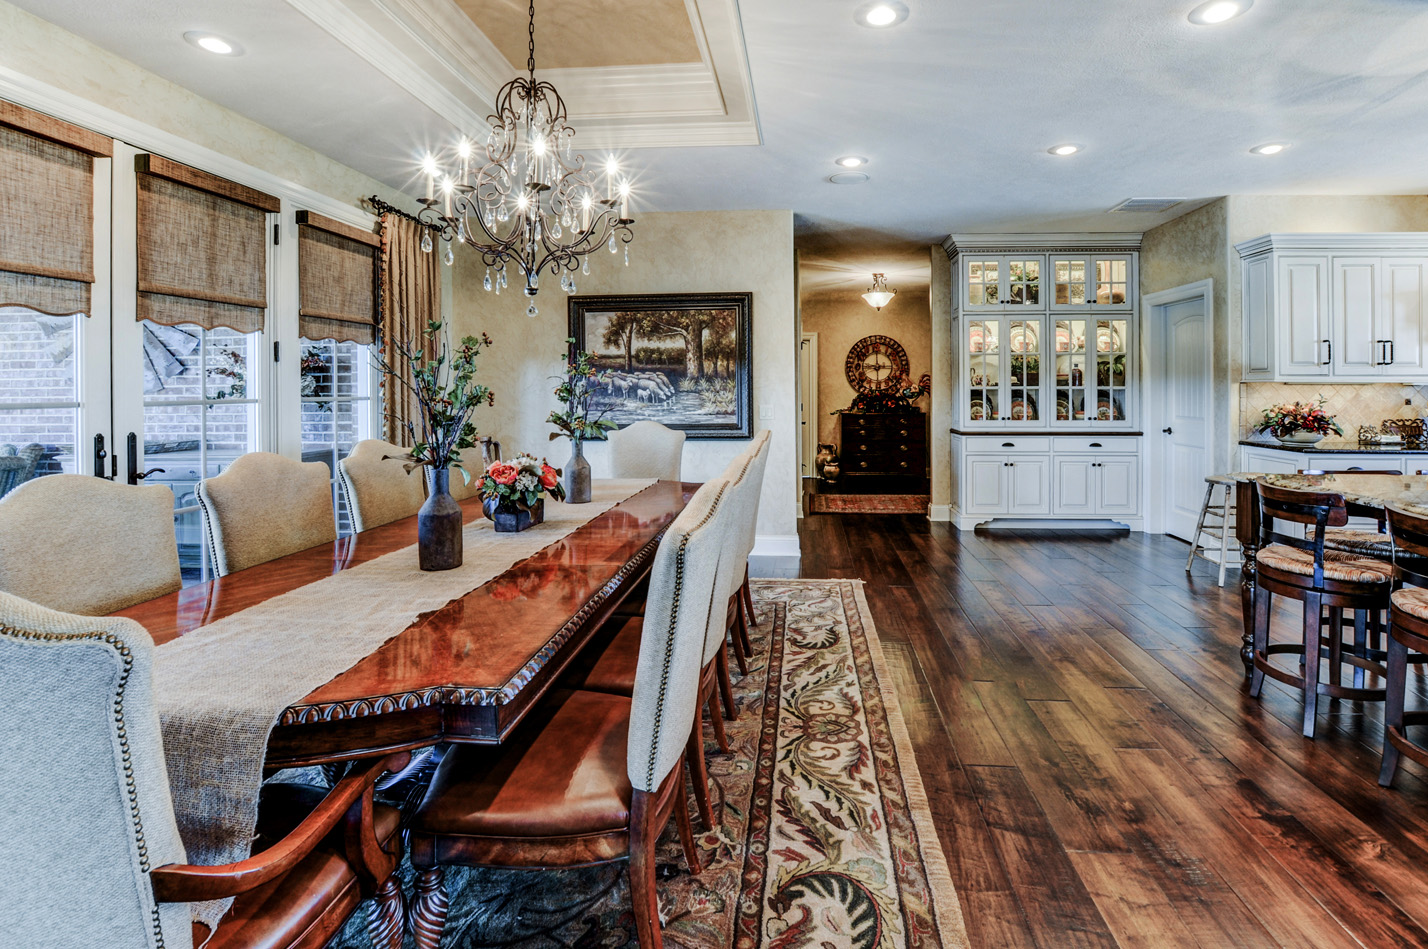 built-by-brett-custom-home-springfield-mo-13735-lawrence-2100-030.jpg